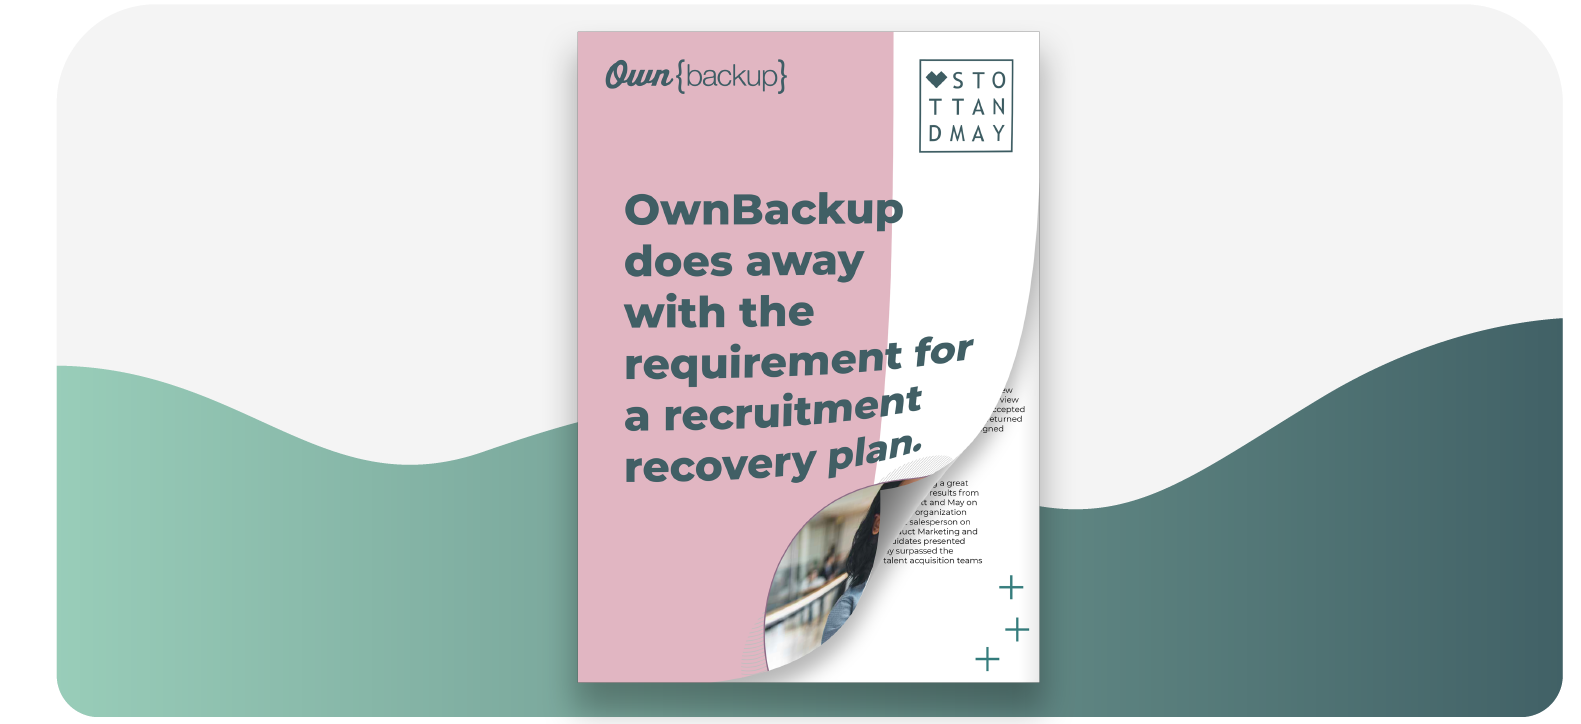 Stott and May OwnBackup Case Study